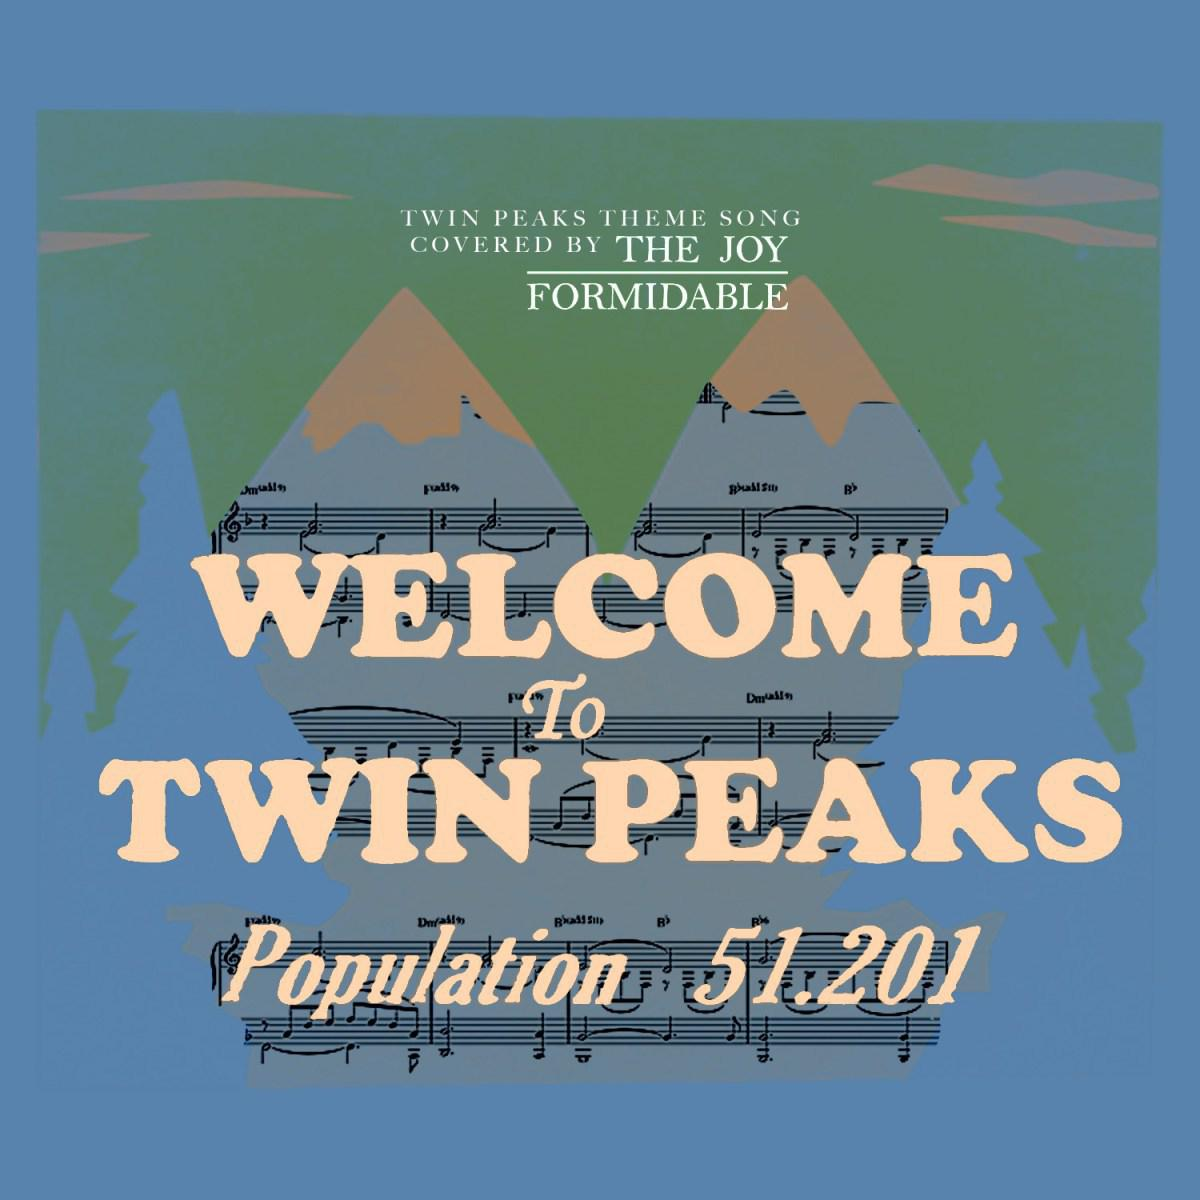 twin peaks single personals Free online dating in twin peaks for all ages and ethnicities, including seniors, white, black women and black men, asian, latino, latina, and everyone else forget classified personals, speed dating, or other twin peaks dating sites or chat rooms, you've found the best.